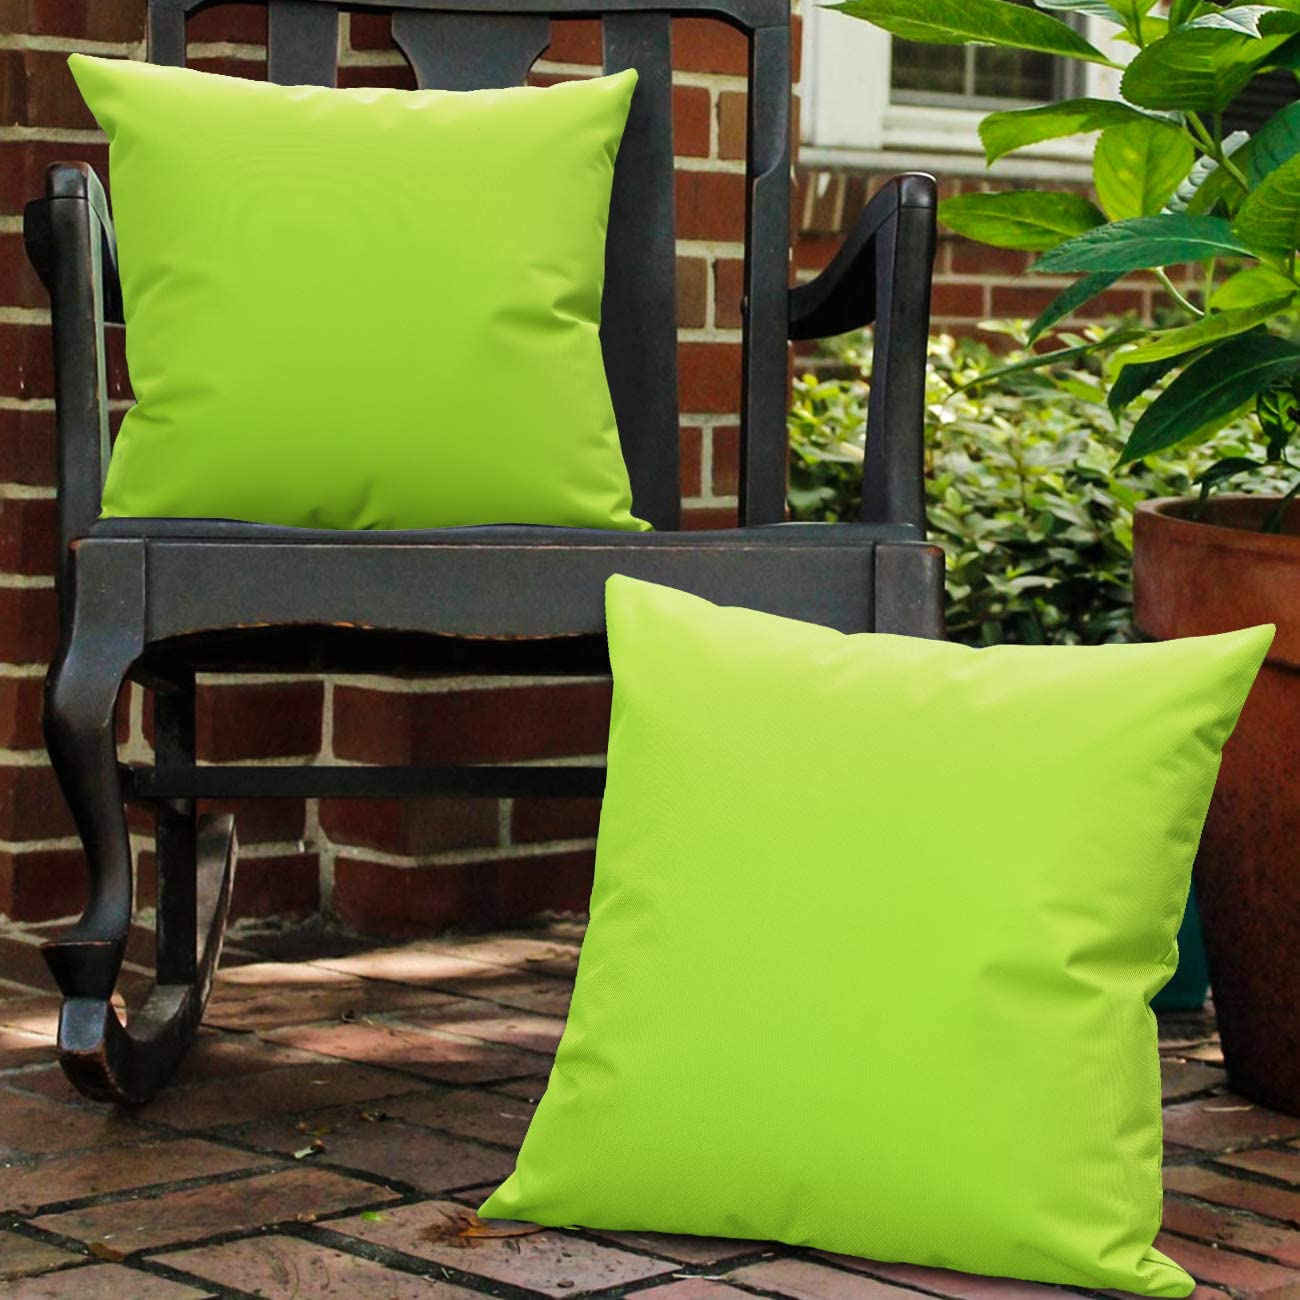 """Lewondr Waterproof Outdoor Throw Pillow Cover, 2 Pack Solid PU Coating Throw Pillow Case UV Protection Garden Cushion Cover for Patio Sofa Couch Balcony 18""""x18""""(45x45cm) - Fluorescent Green"""